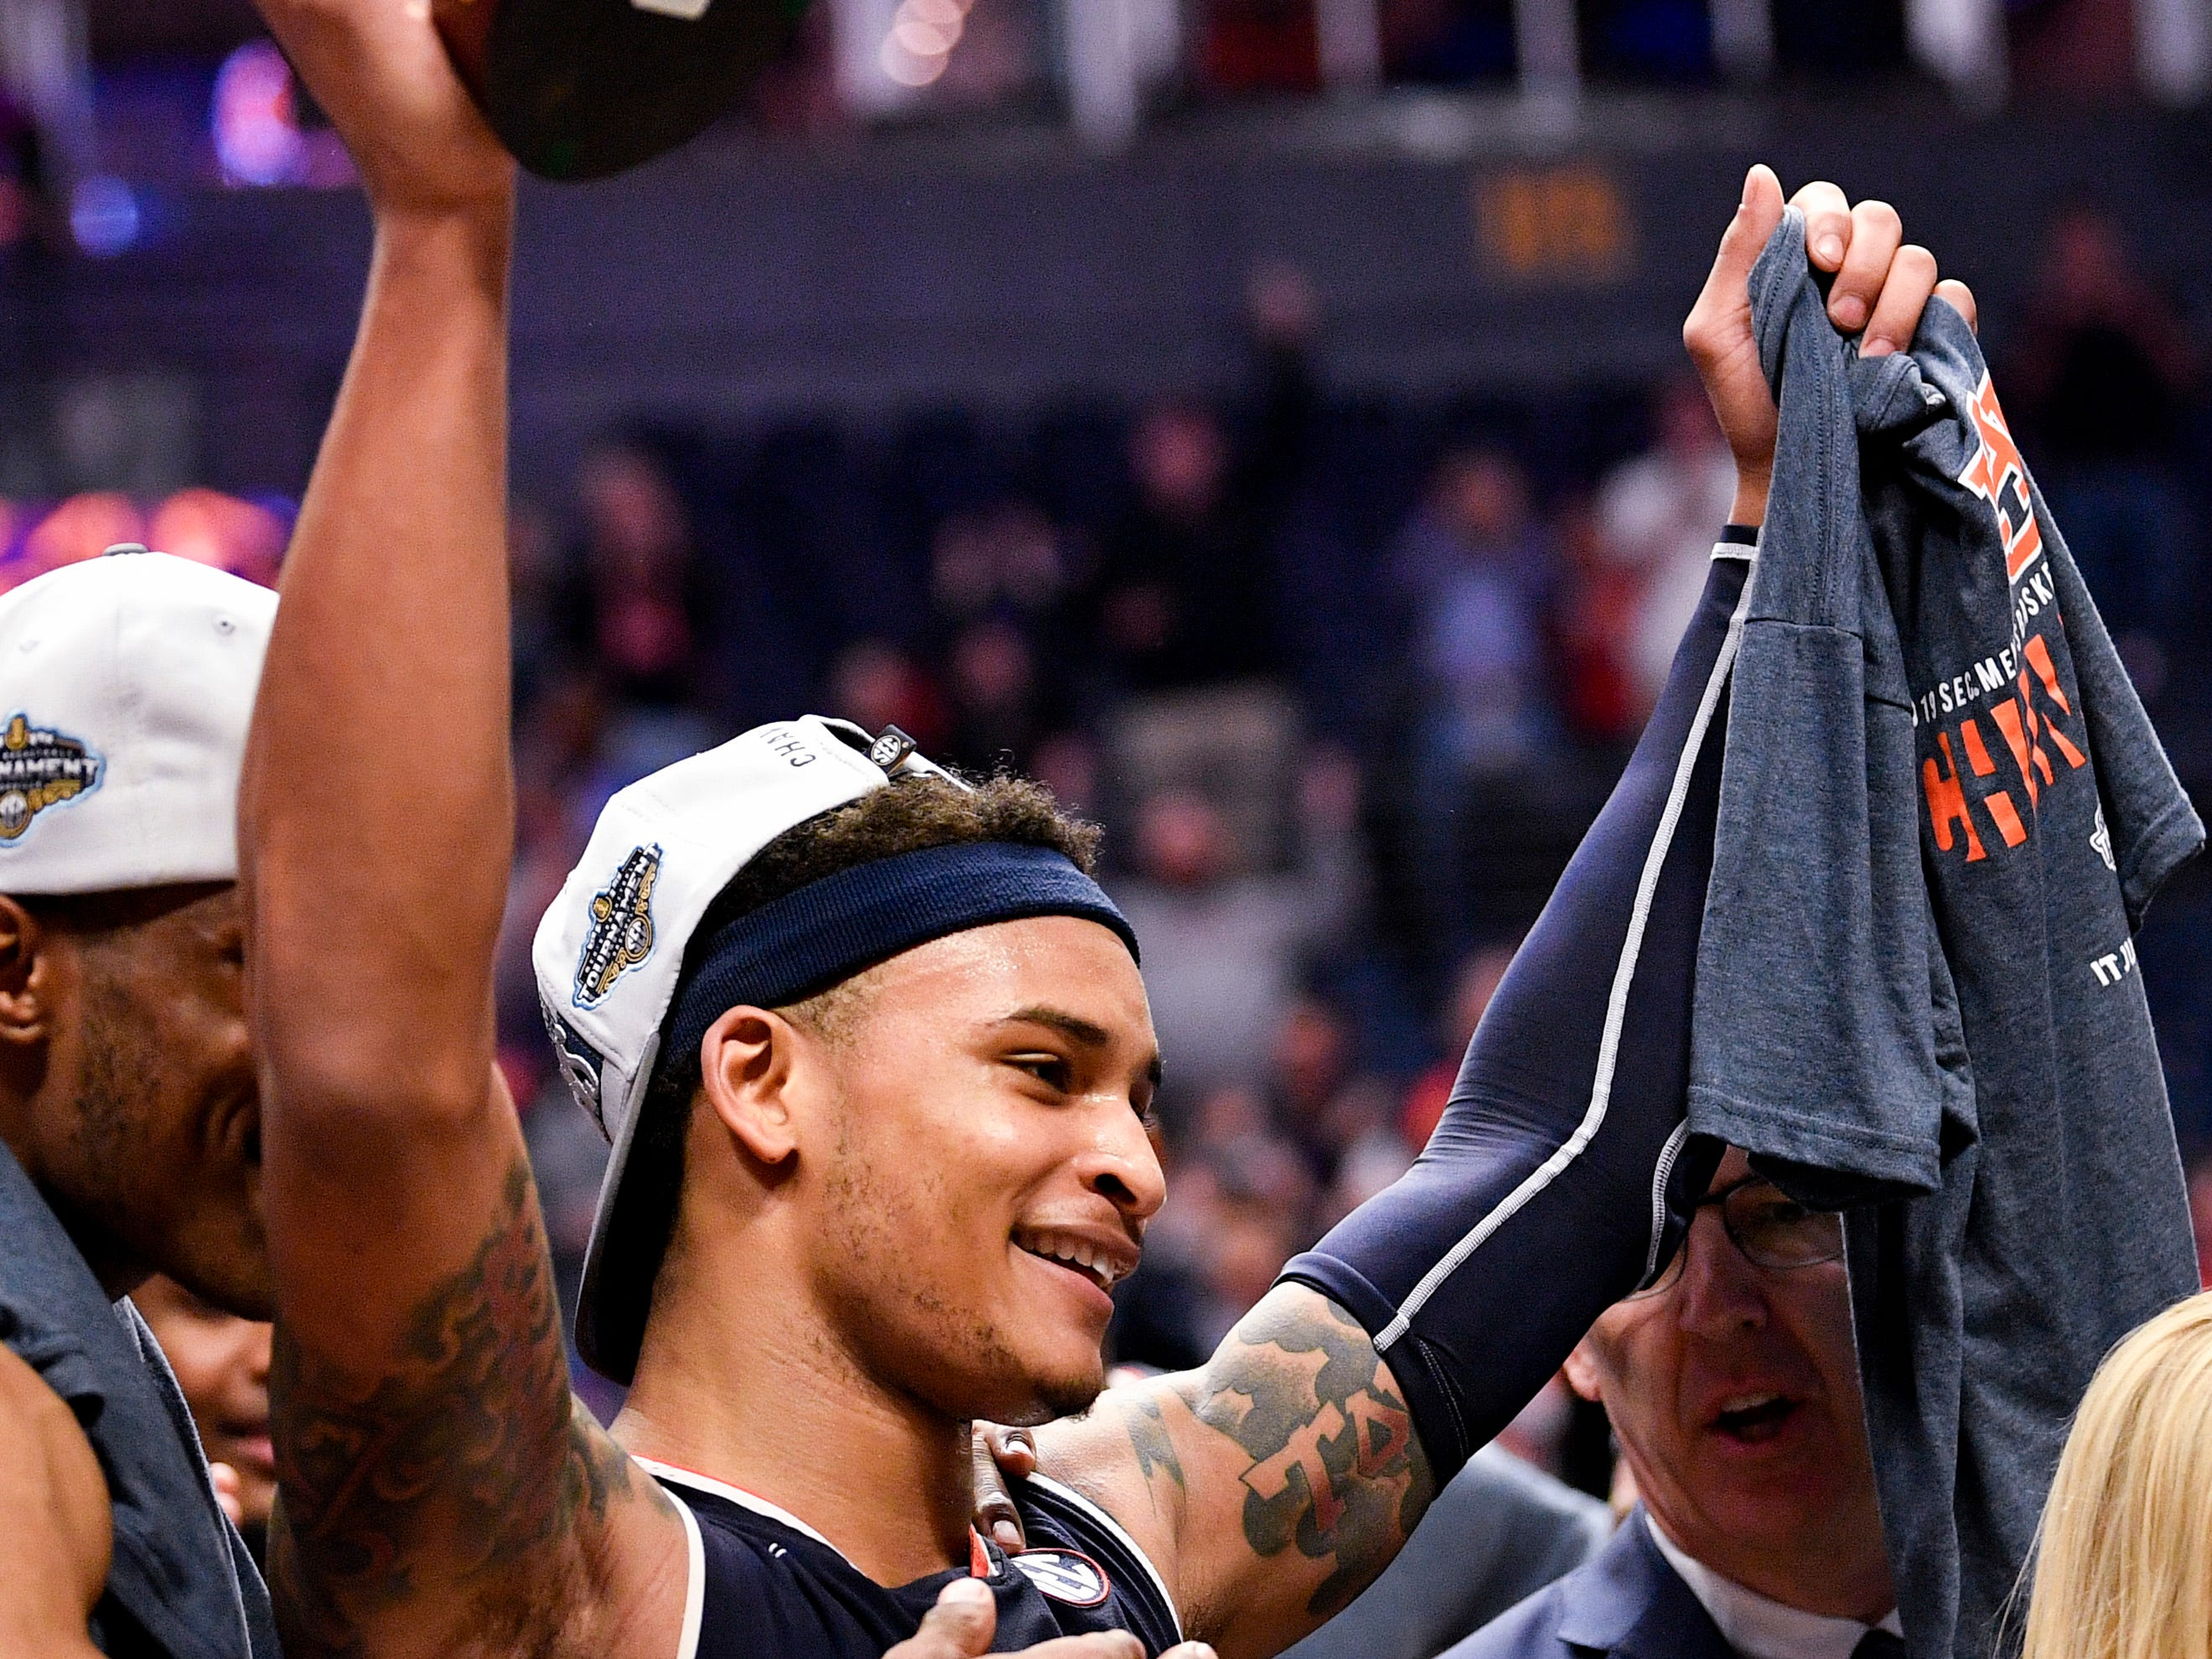 Auburn guard Bryce Brown (2) celebrates after their SEC Men's Basketball Tournament championship victory against Tennessee at Bridgestone Arena in Nashville, Tenn., Sunday, March 17, 2019.